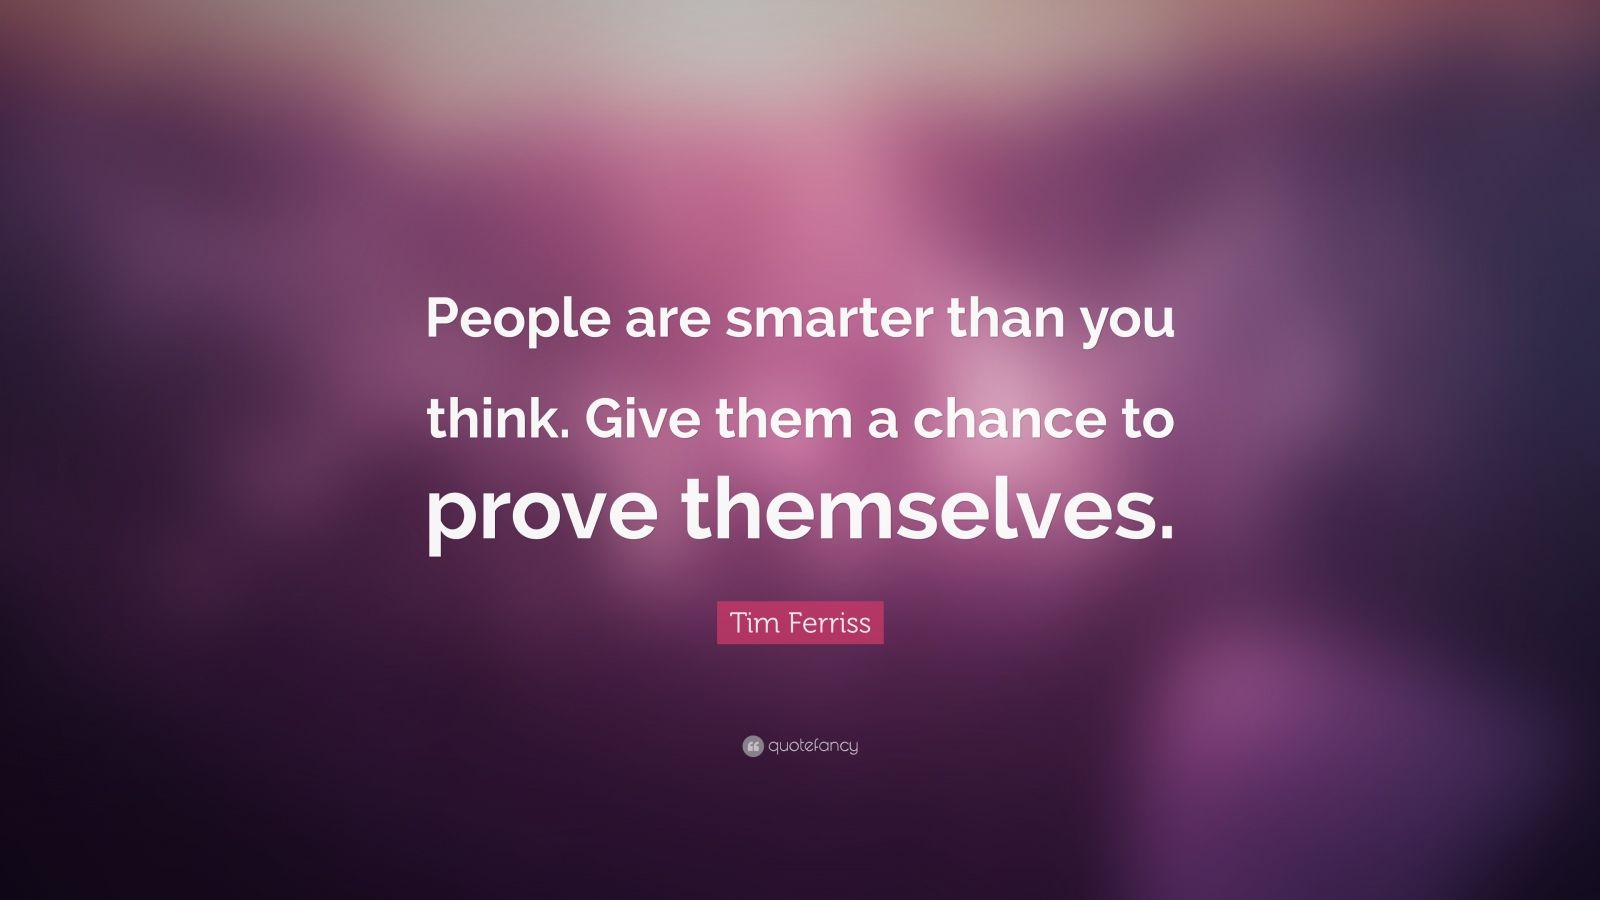 """Tim Ferriss Quote: """"People are smarter than you think. Give them a chance to prove themselves."""""""